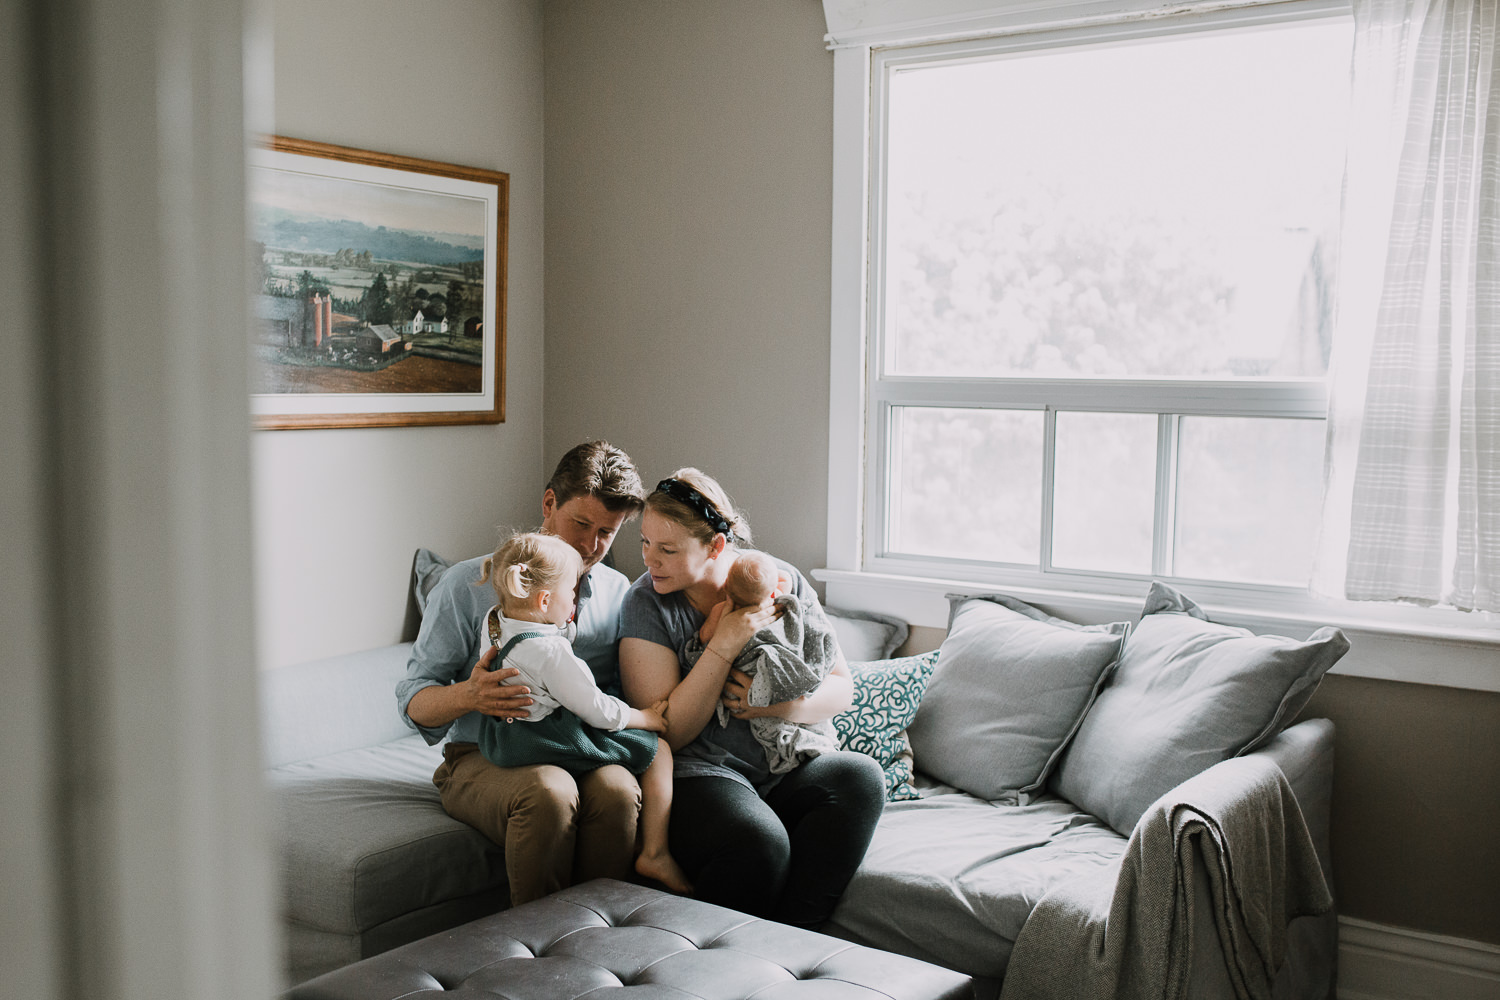 family of four with 2 year old toddler girl and 10 day old baby boy sitting on couch together - Stouffville Lifestyle Family Photos